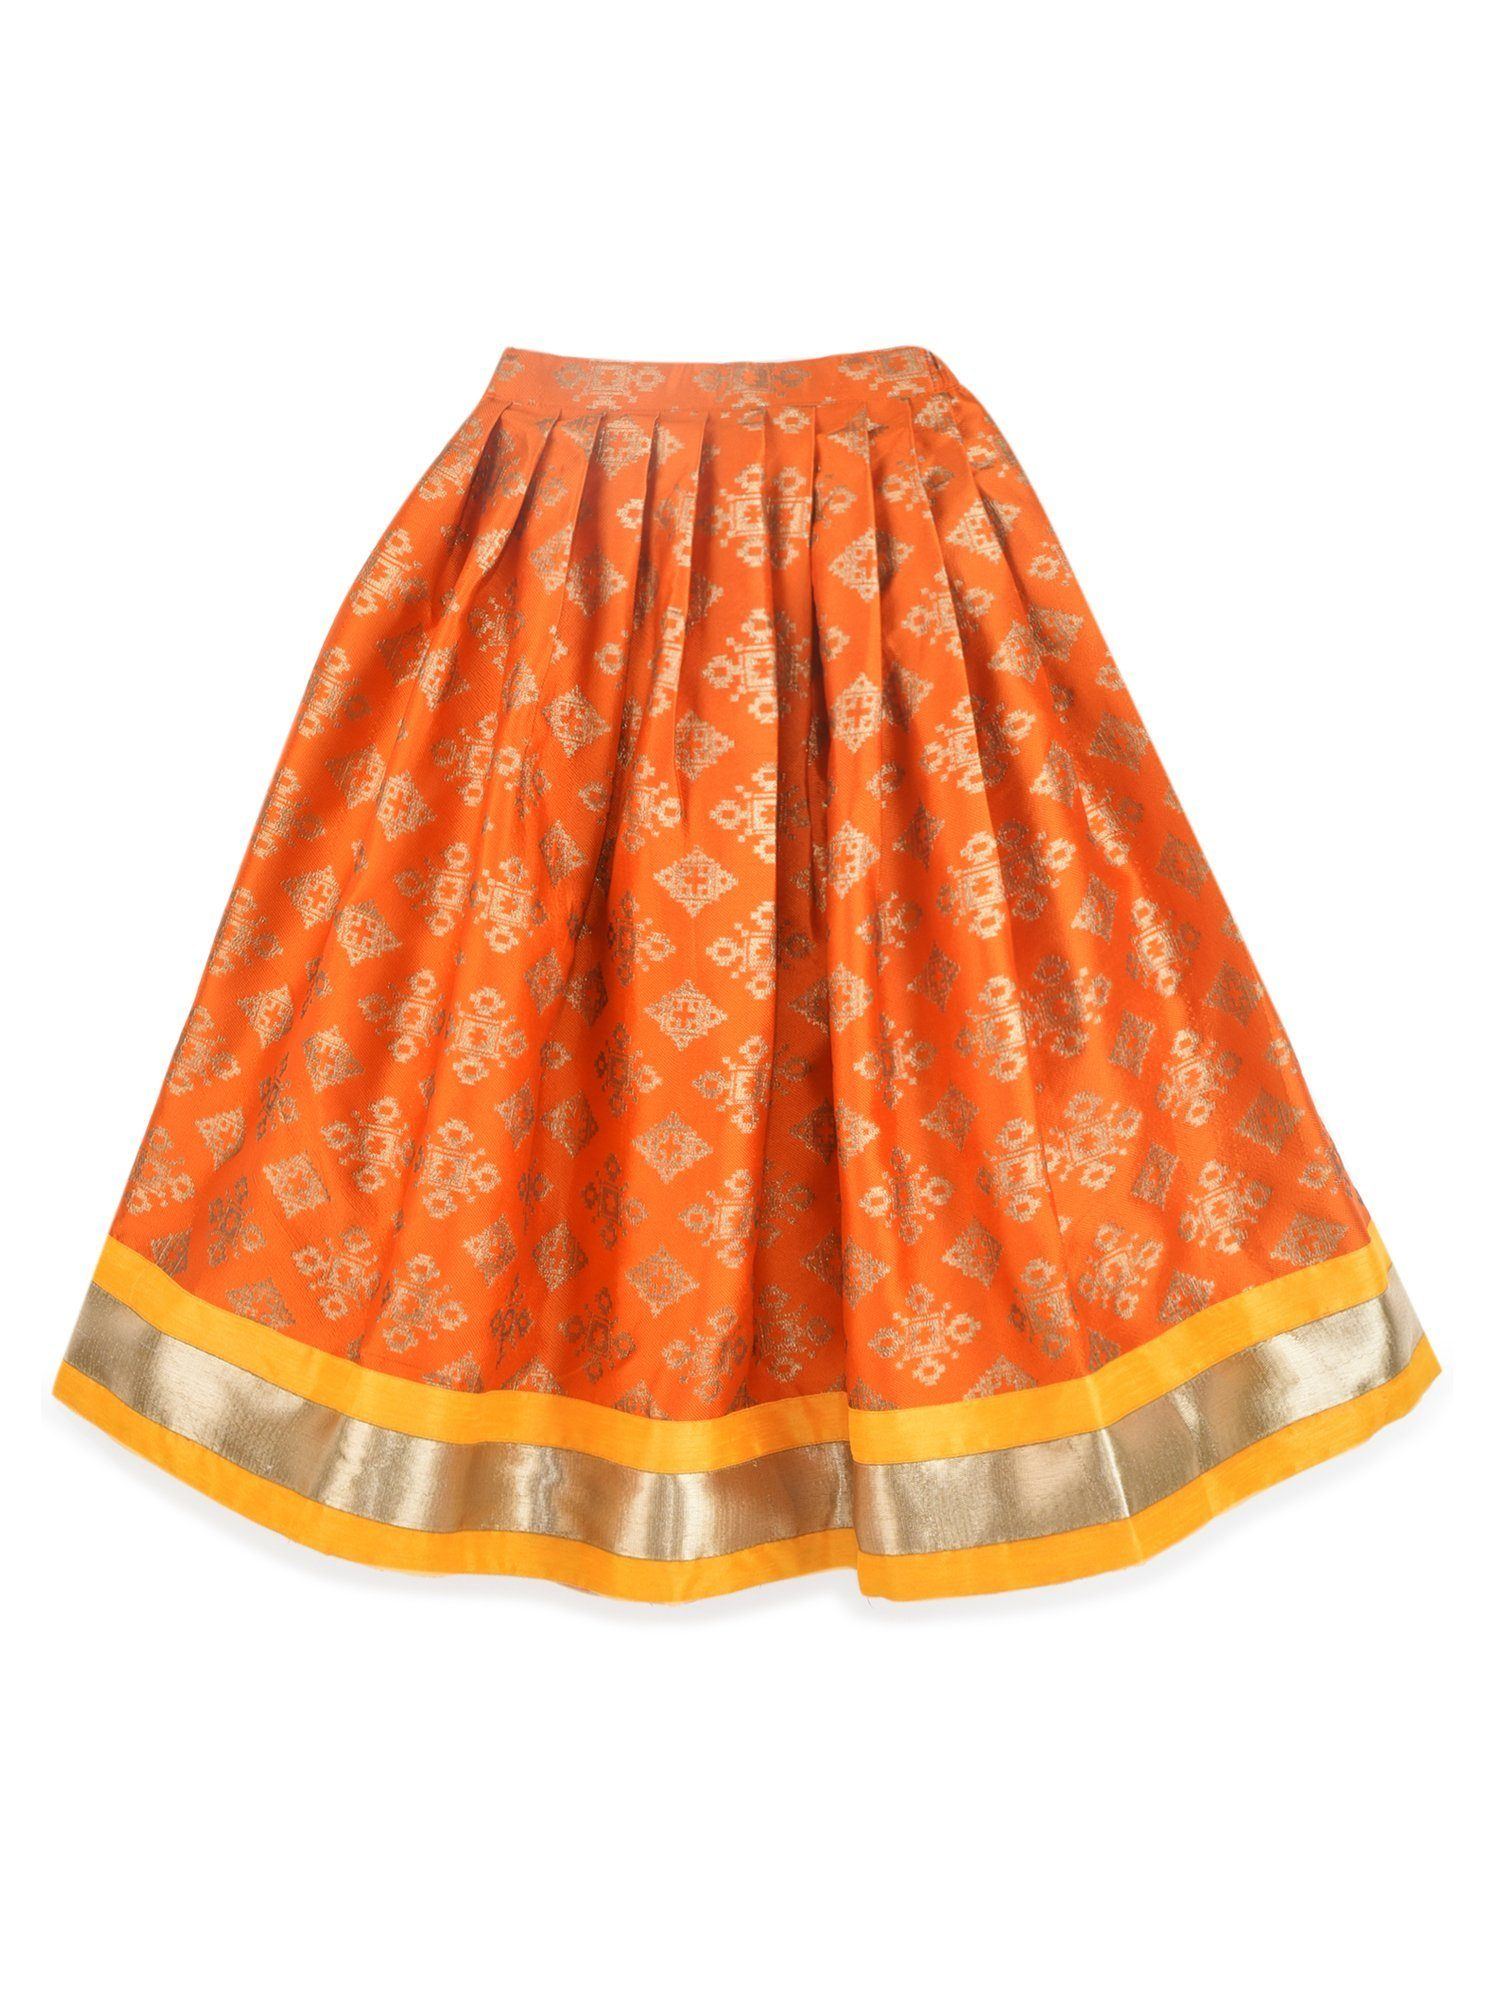 K&U Girls' Yellow and Orange Lehenga Choli Lehenga Choli Sitaarey